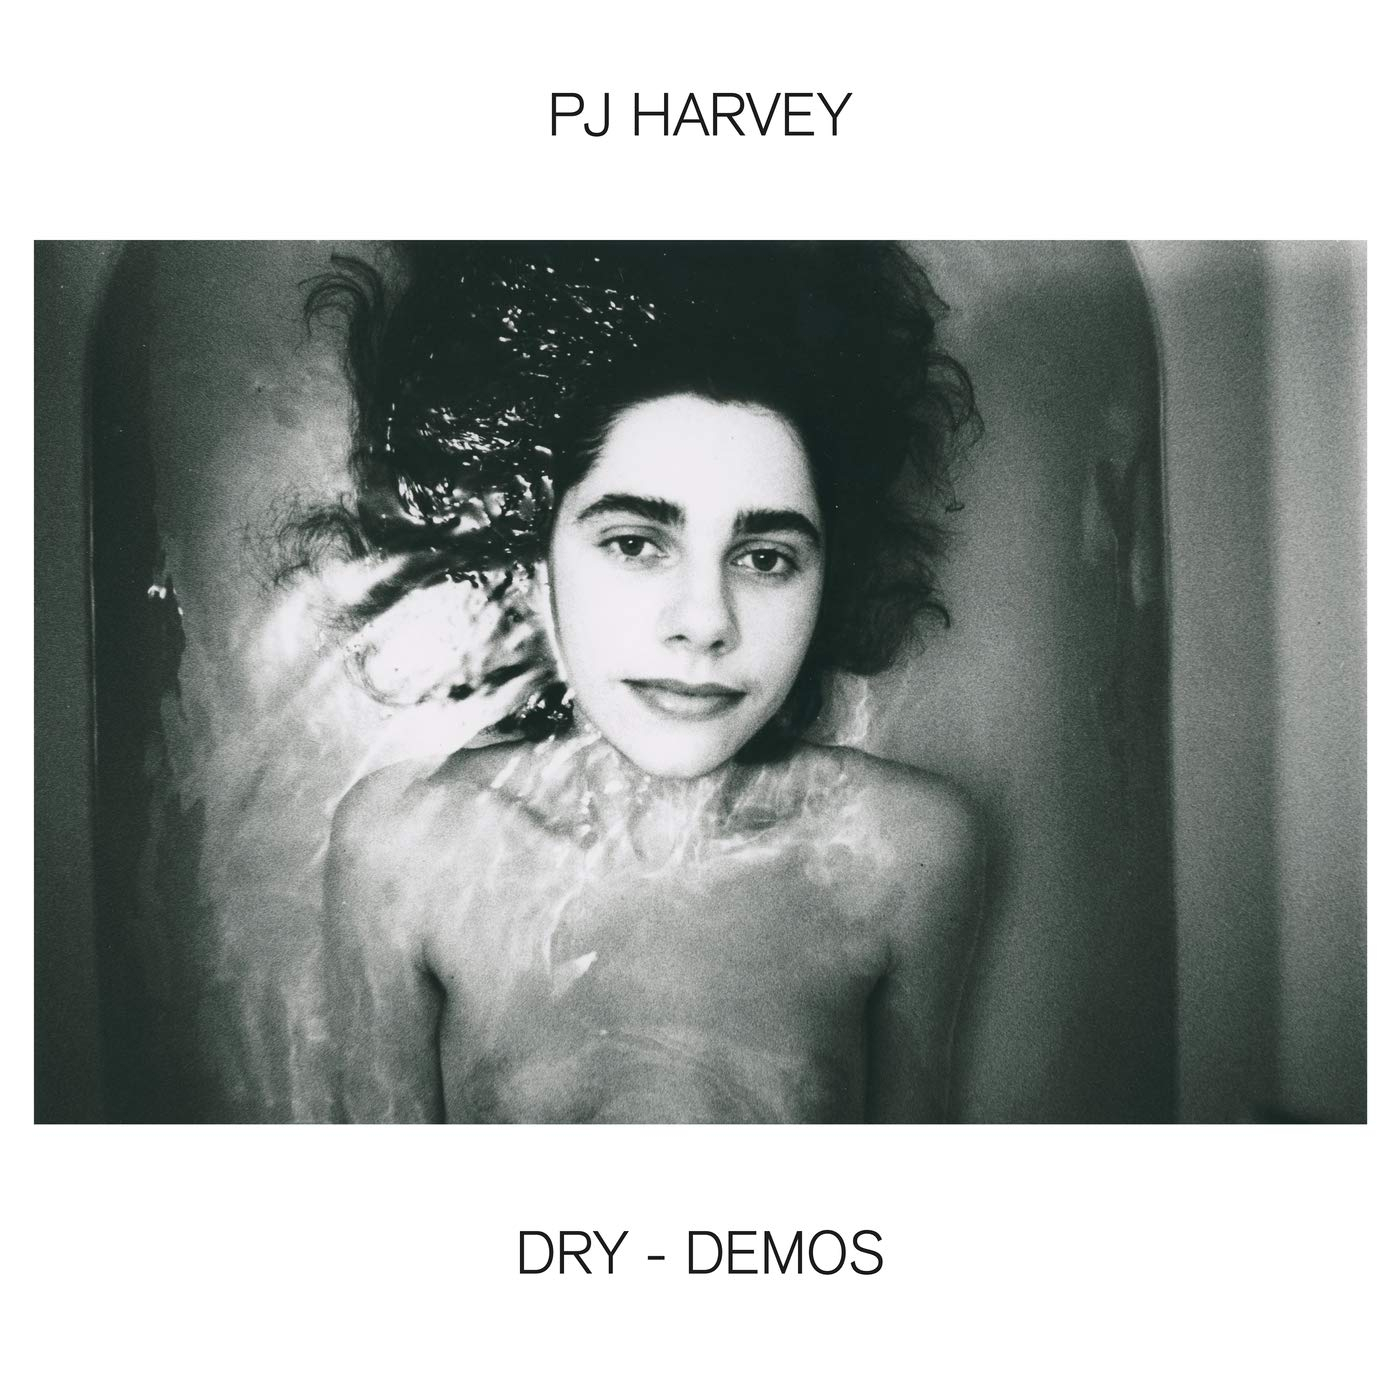 "PJ HARVEY ""Dry demos"" CD"